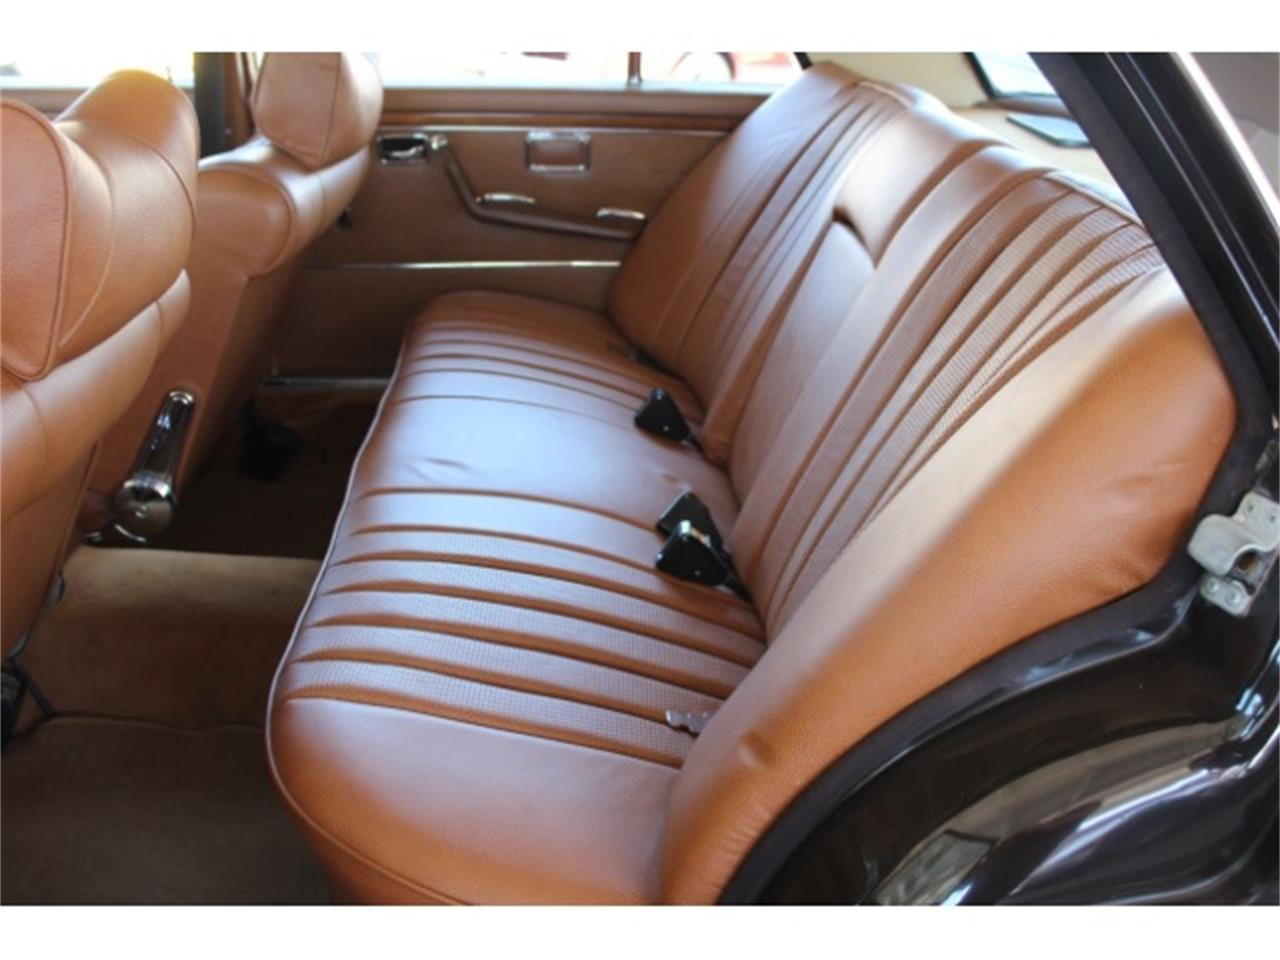 1972 Mercedes-Benz 300SEL for sale in Sherman Oaks, CA – photo 17